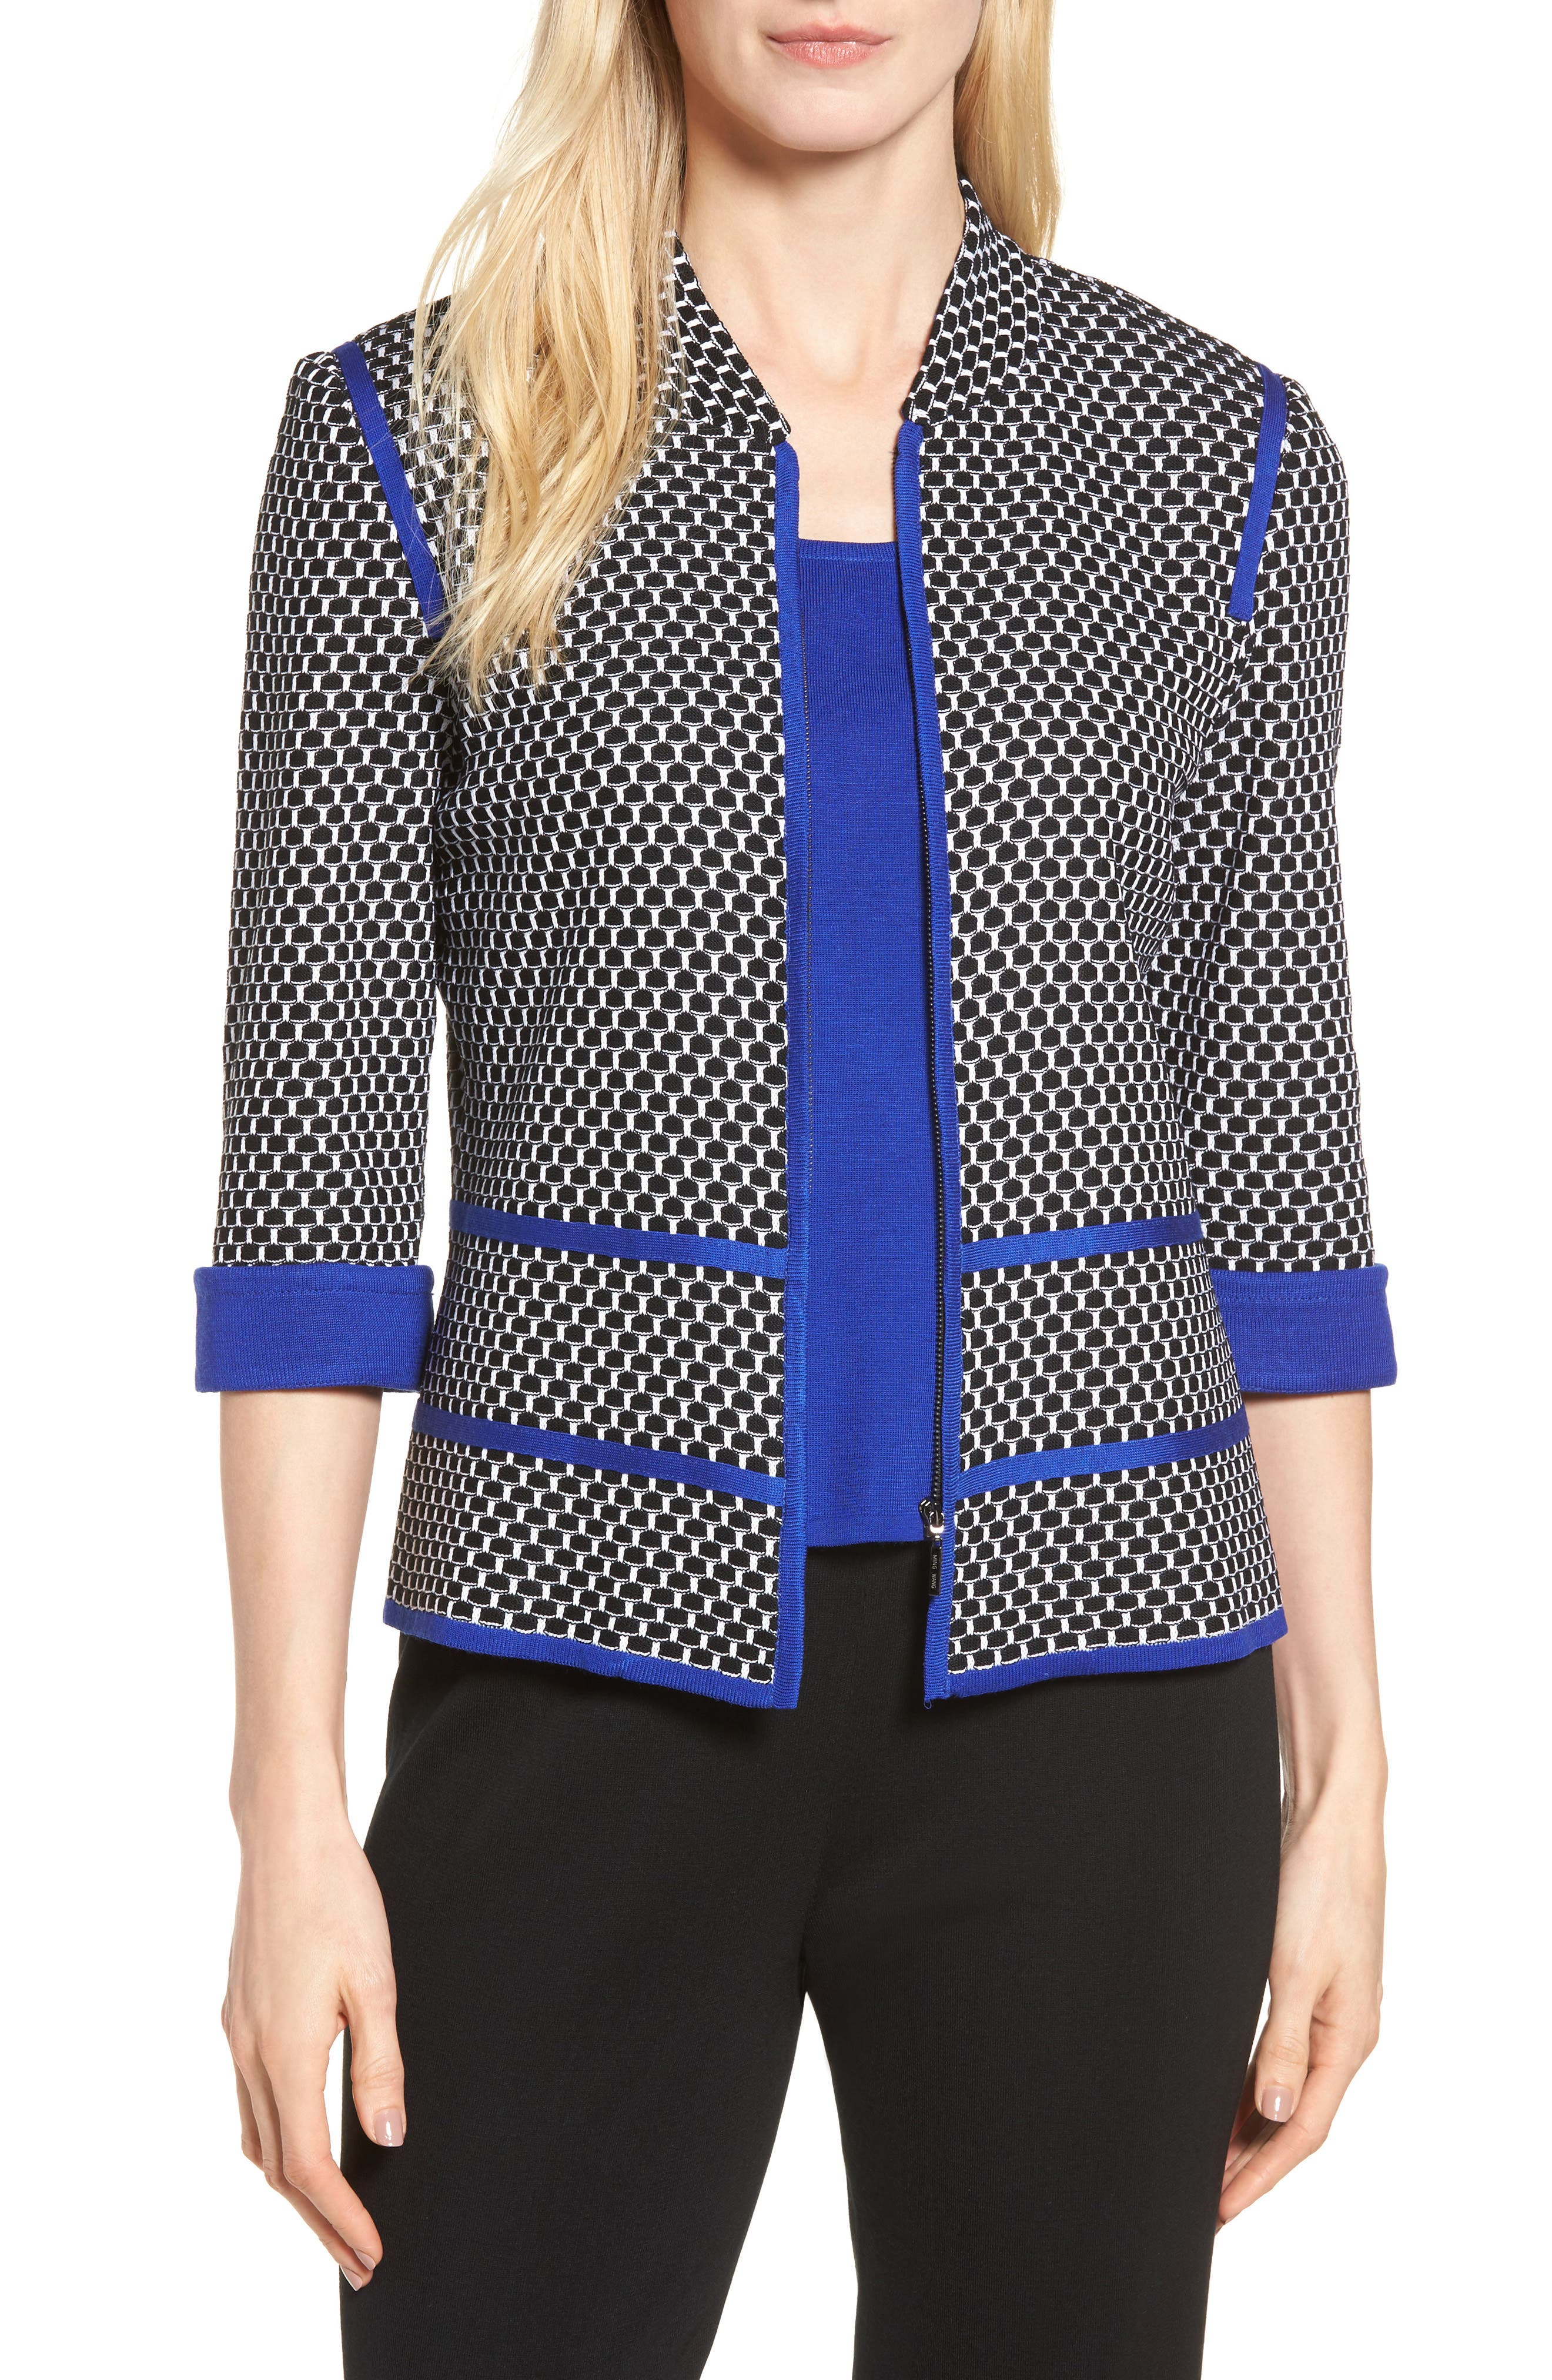 Jacquard Knit Jacket,                             Main thumbnail 1, color,                             Black/ Blue Flame/ White